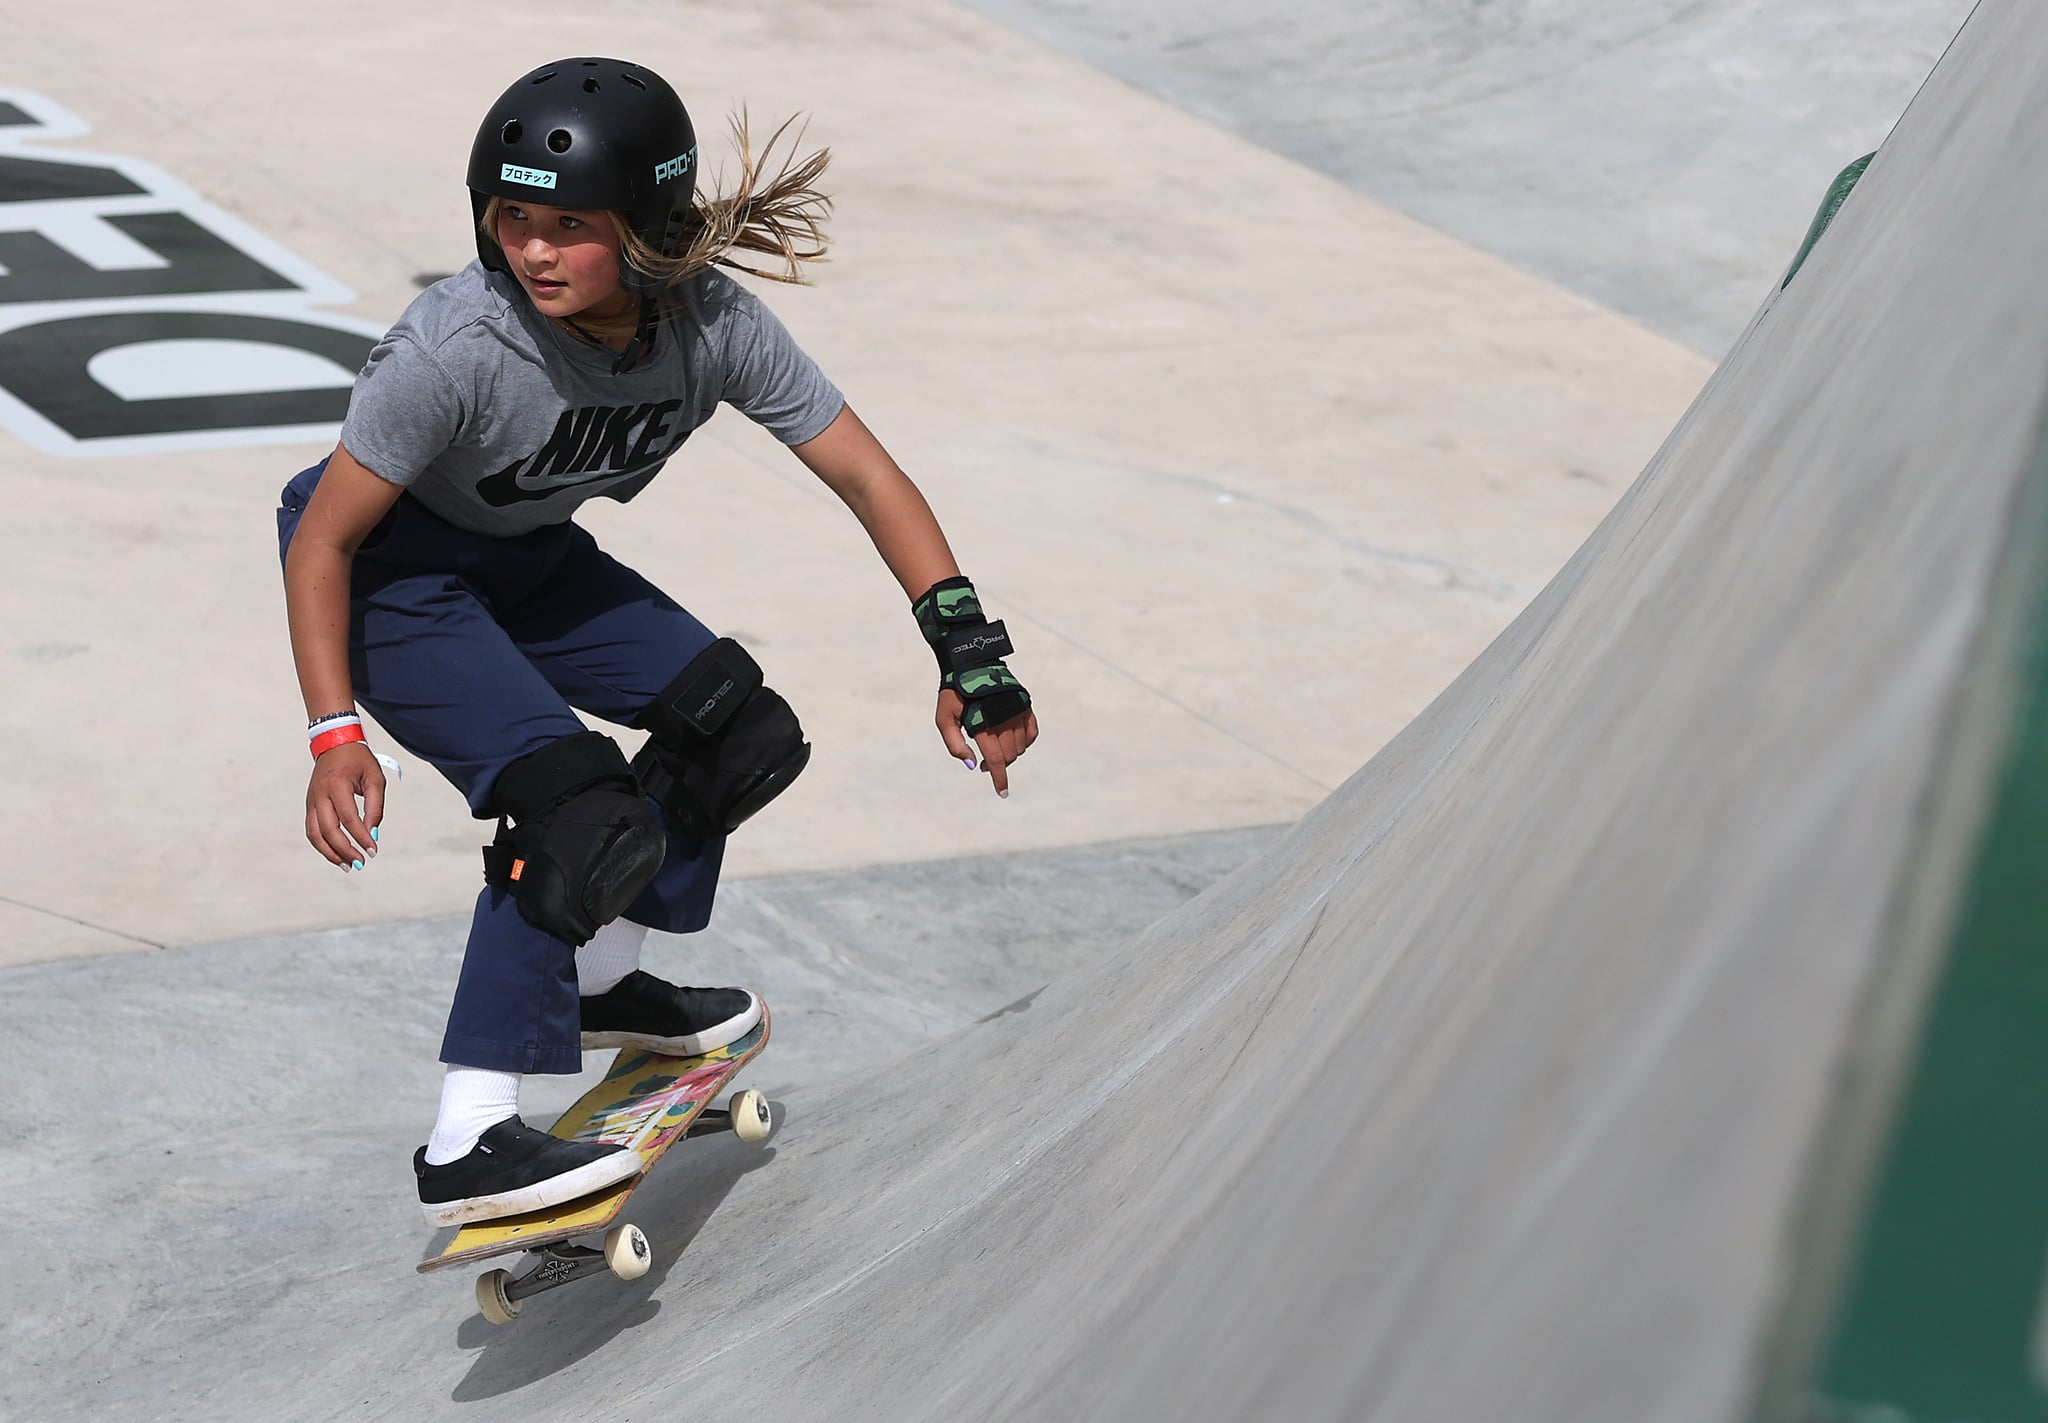 DES MOINES, IOWA - MAY 21: Sky Brown of Great Britain competes in the Women's Park Semifinal at the Dew Tour on May 21, 2021 in Des Moines, Iowa. (Photo by Sean M. Haffey/Getty Images)